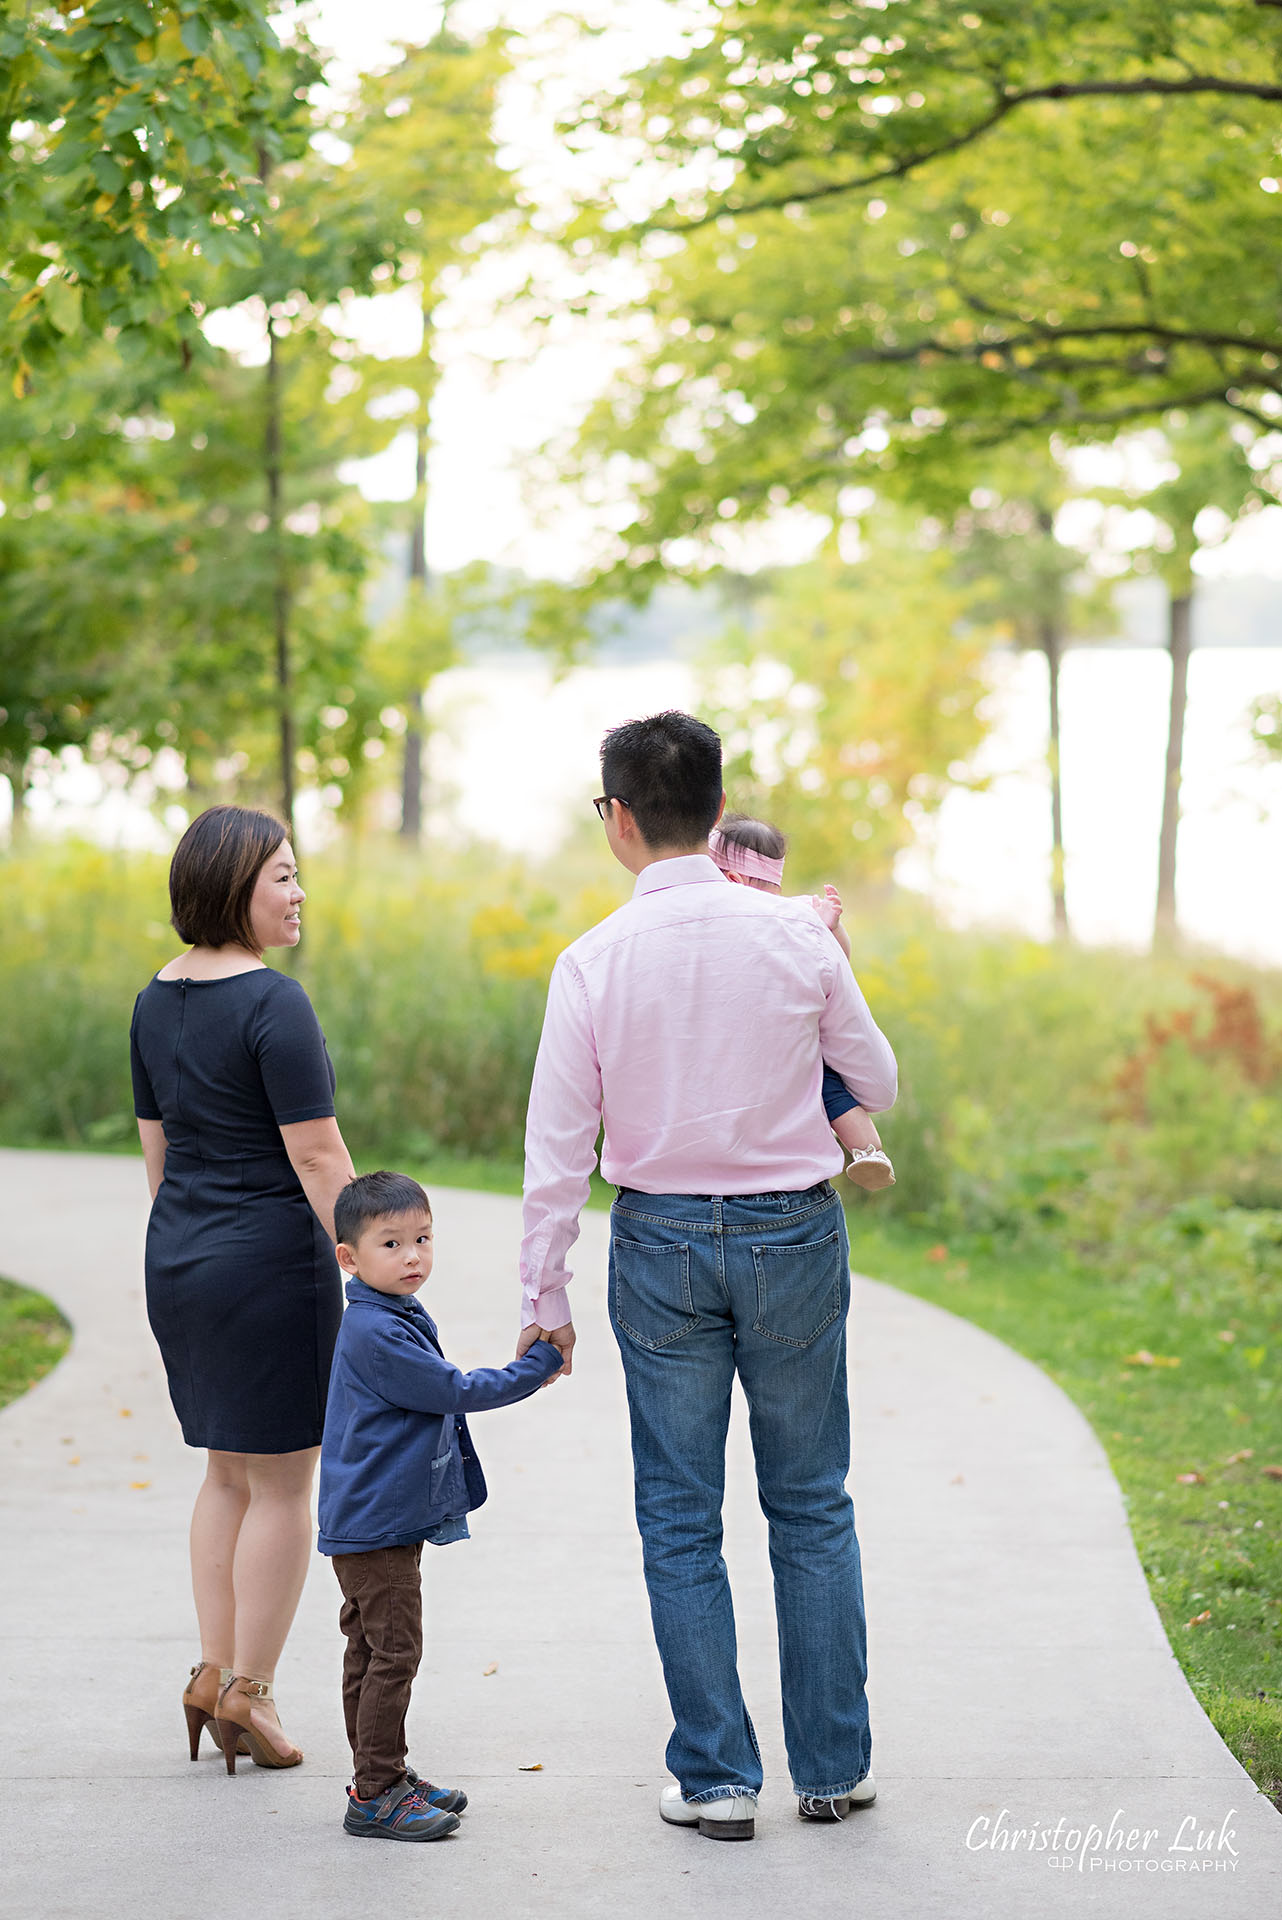 Christopher Luk Toronto Photographer Lake Wilcox Park Family Baby Newborn Richmond Hill Session Mother Father Mom Dad Son Brother Daughter Sister Candid Natural Photojournalistic Looking Back Walking